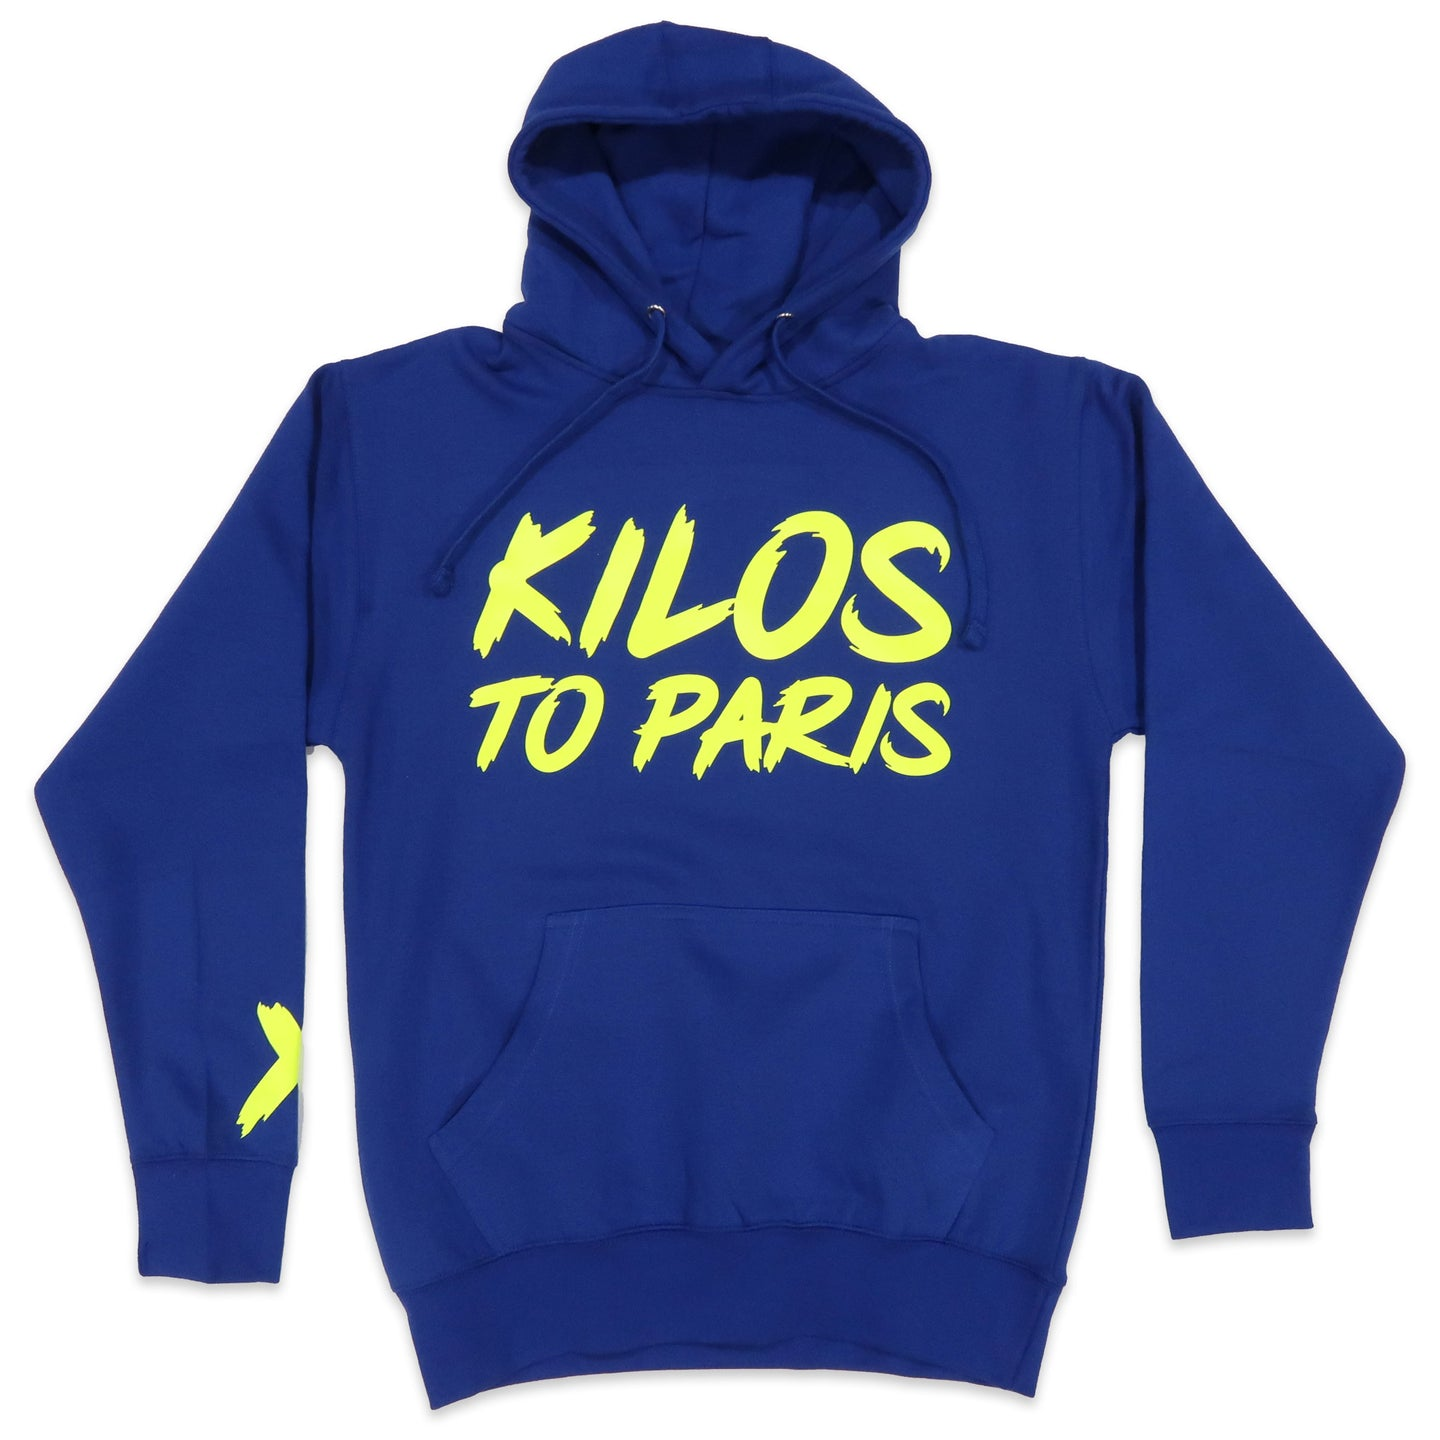 Kilos To Paris V2 Hoodie in Blue and Neon Yellow